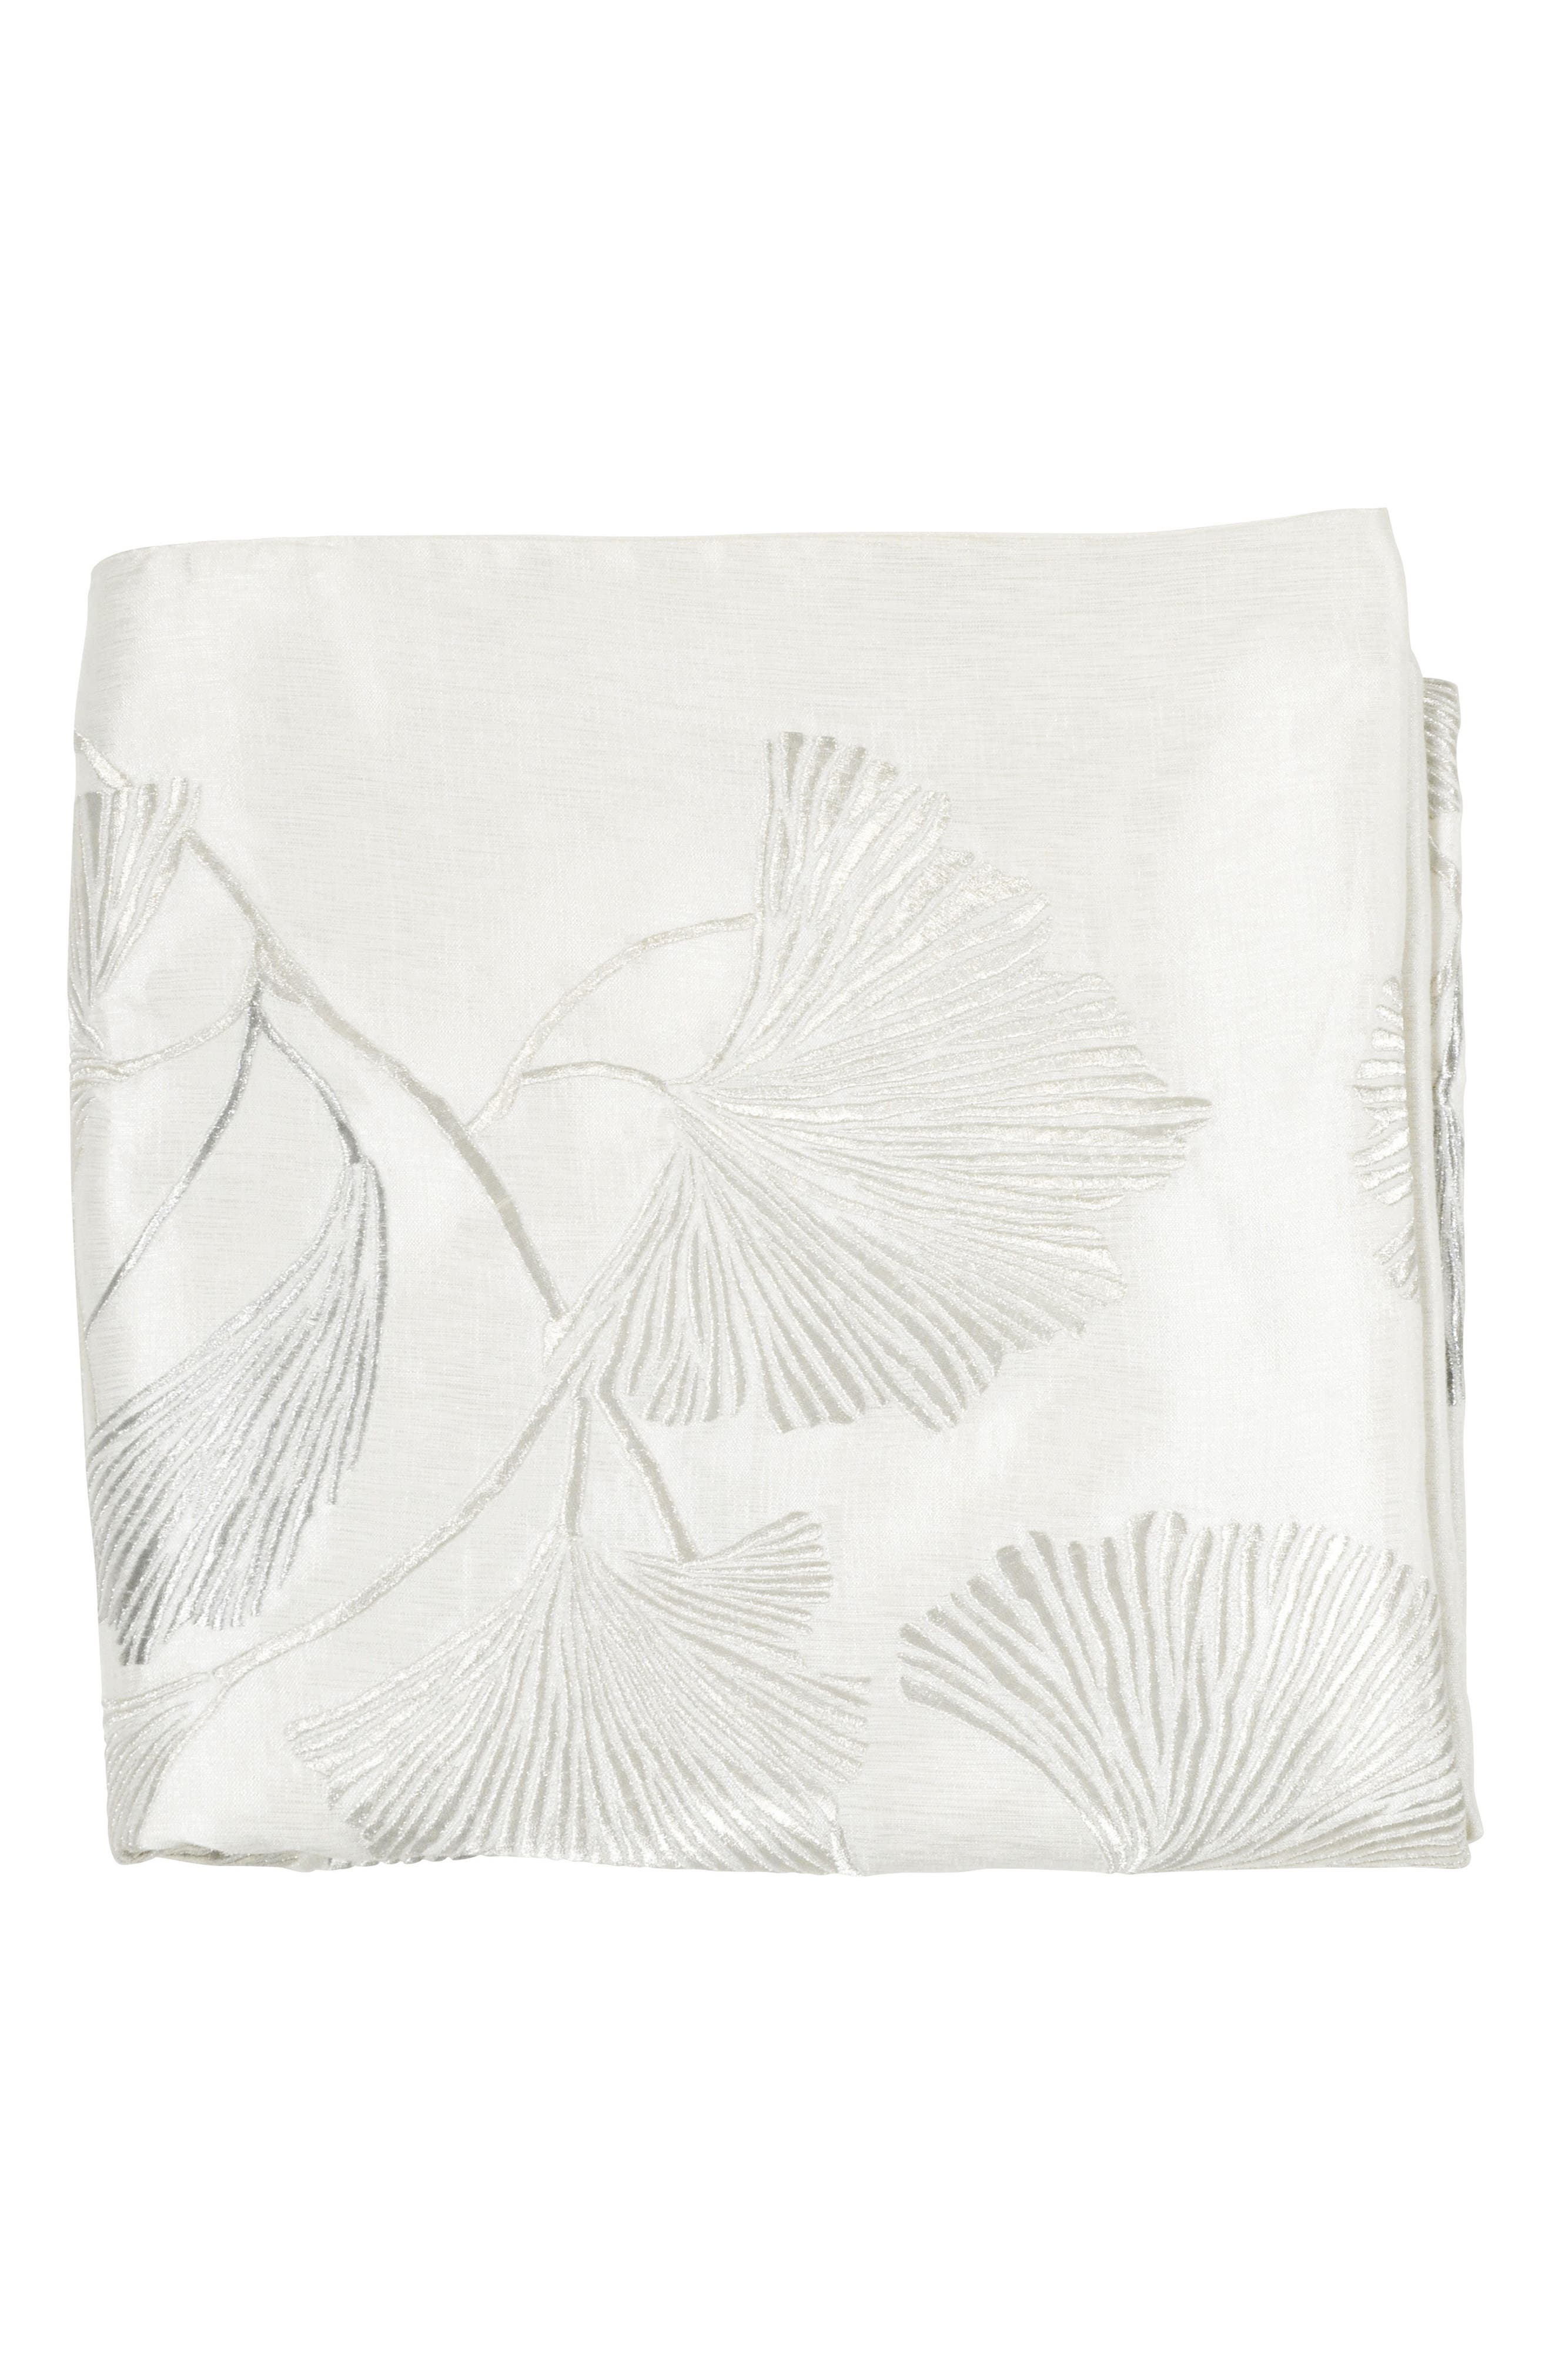 Ginkgo Leaf Embroidered Throw, Main, color, IVORY